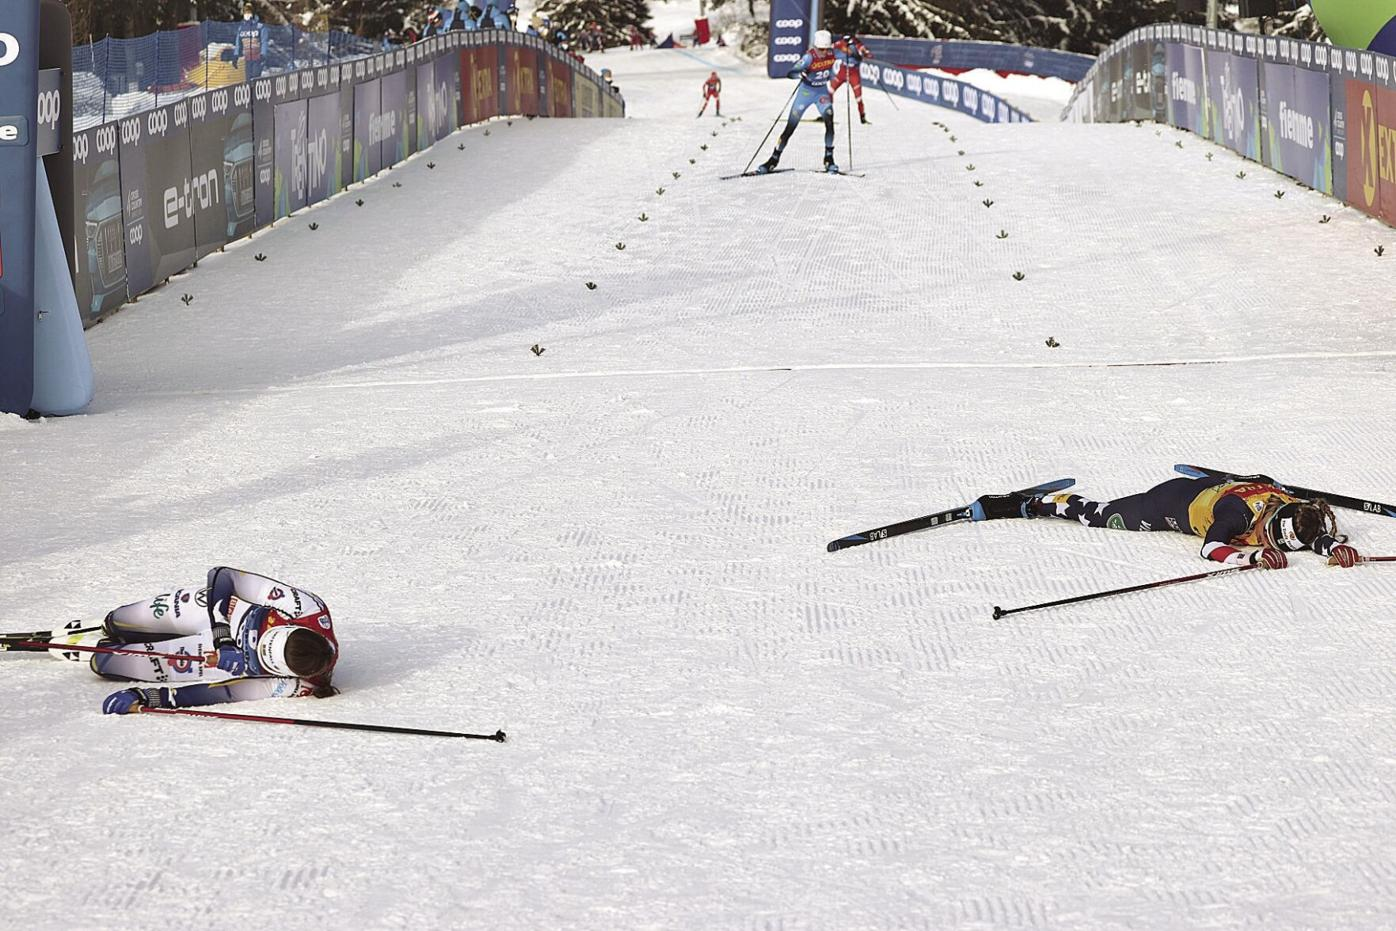 Italy Cross Country Skiing World Cup